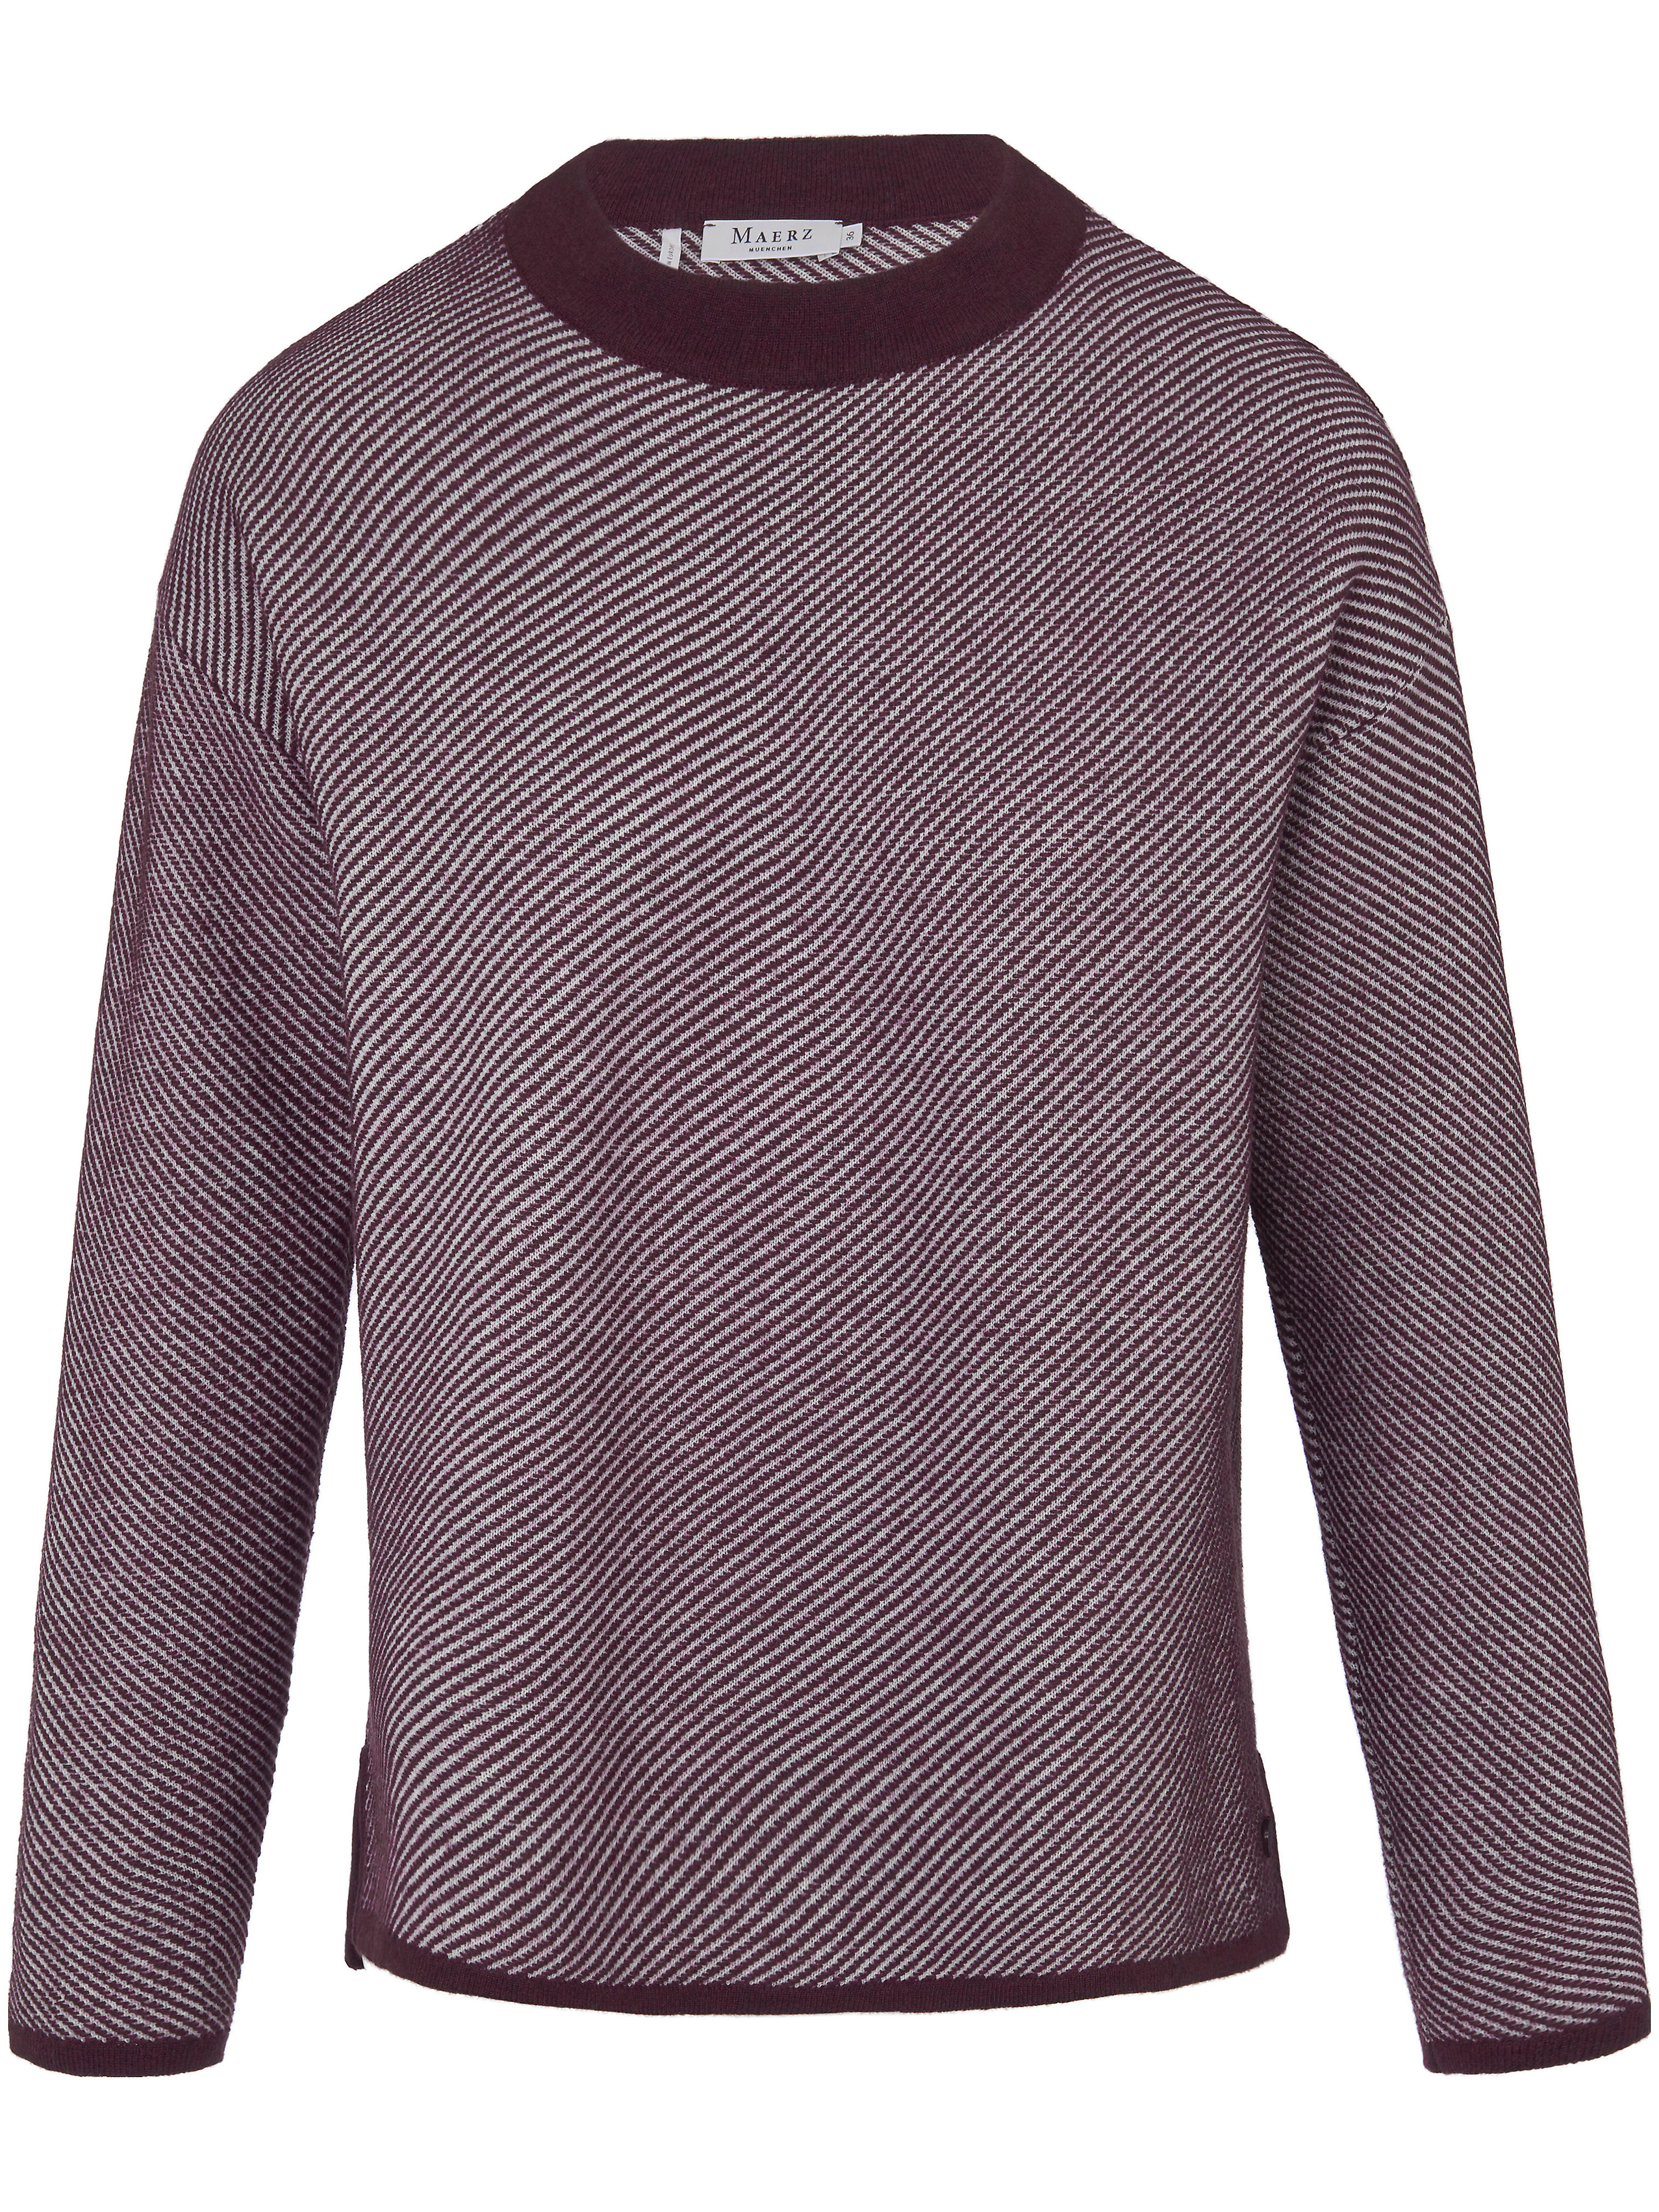 Le pull 100% laine vierge  MAERZ Muenchen multicolore taille 44